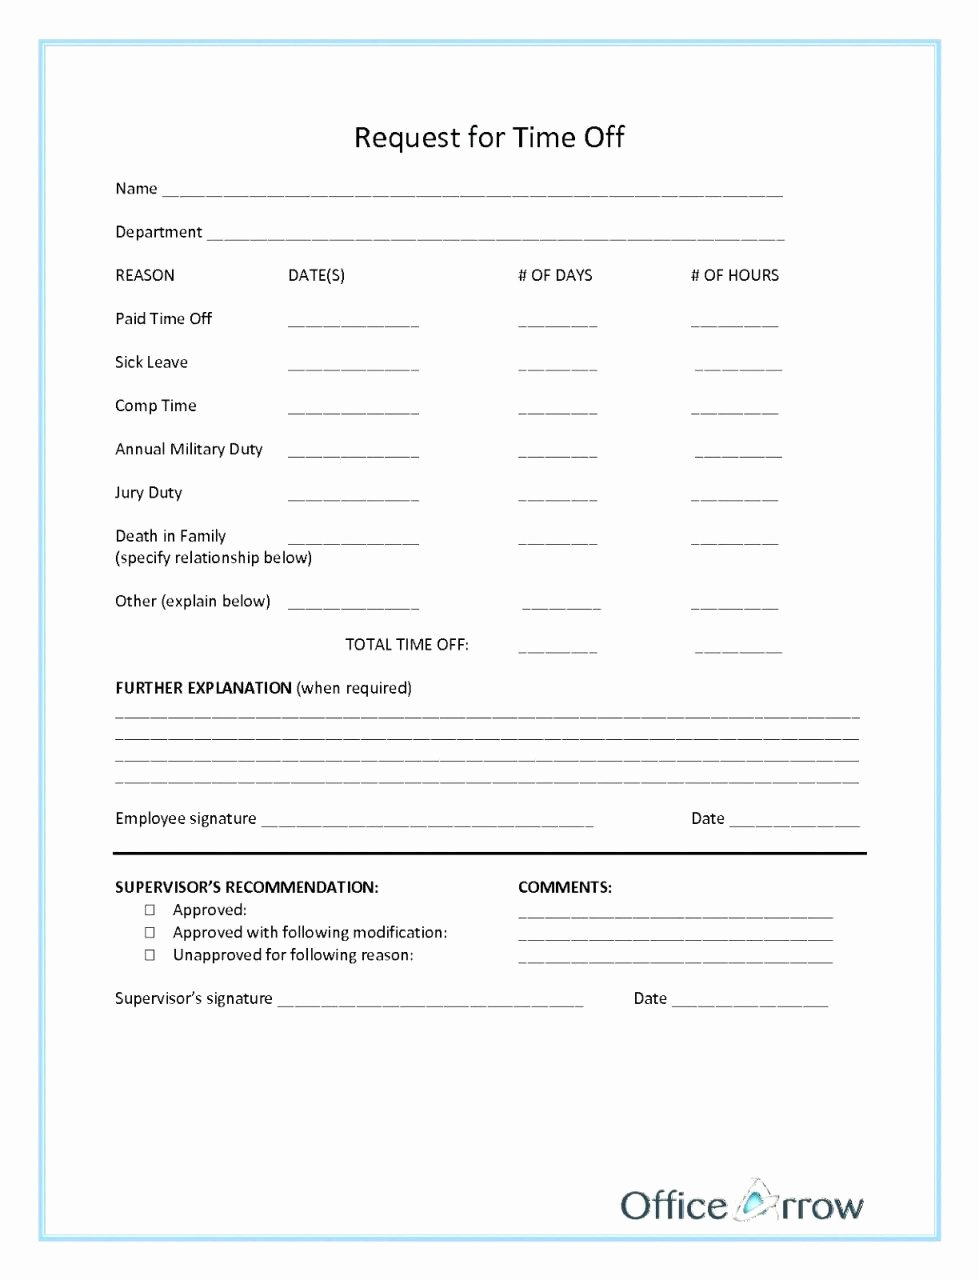 Time Off Request form Templates Unique Paid Time F form